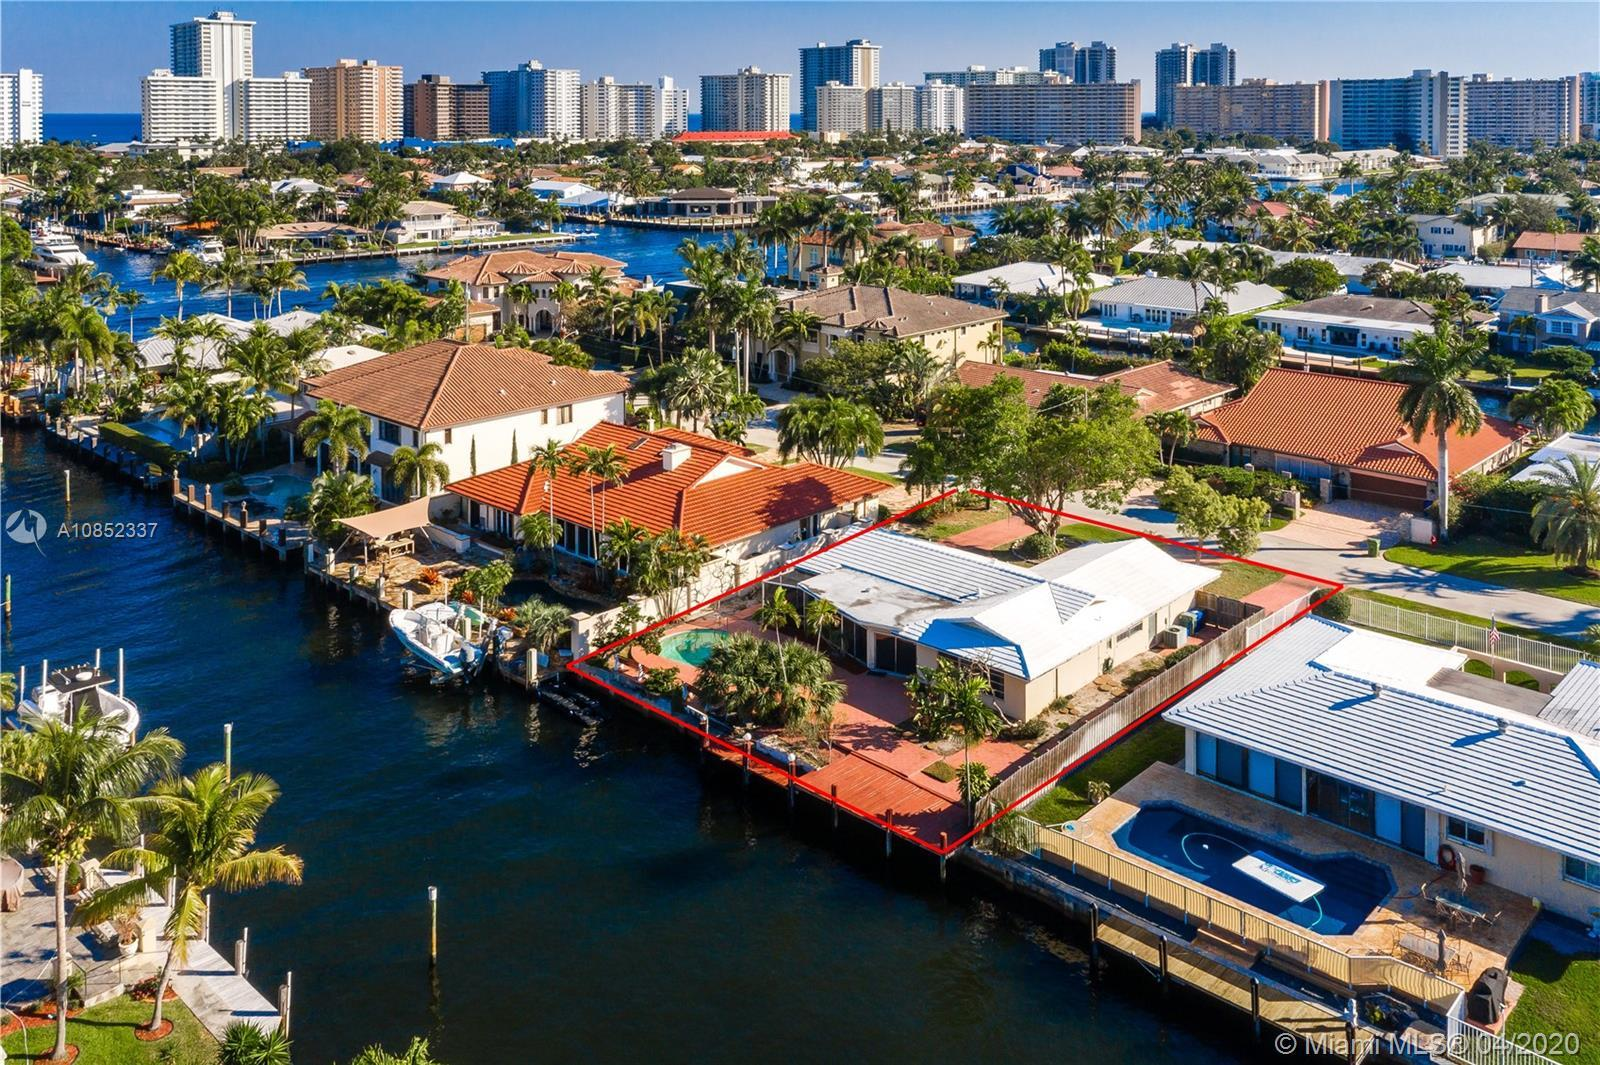 JUST LISTED: BEST PRICED WATERFRONT LOT IN CORAL RIDGE COUNTRY CLUB. ONLY 4 HOUSES IN FROM THE INTRA